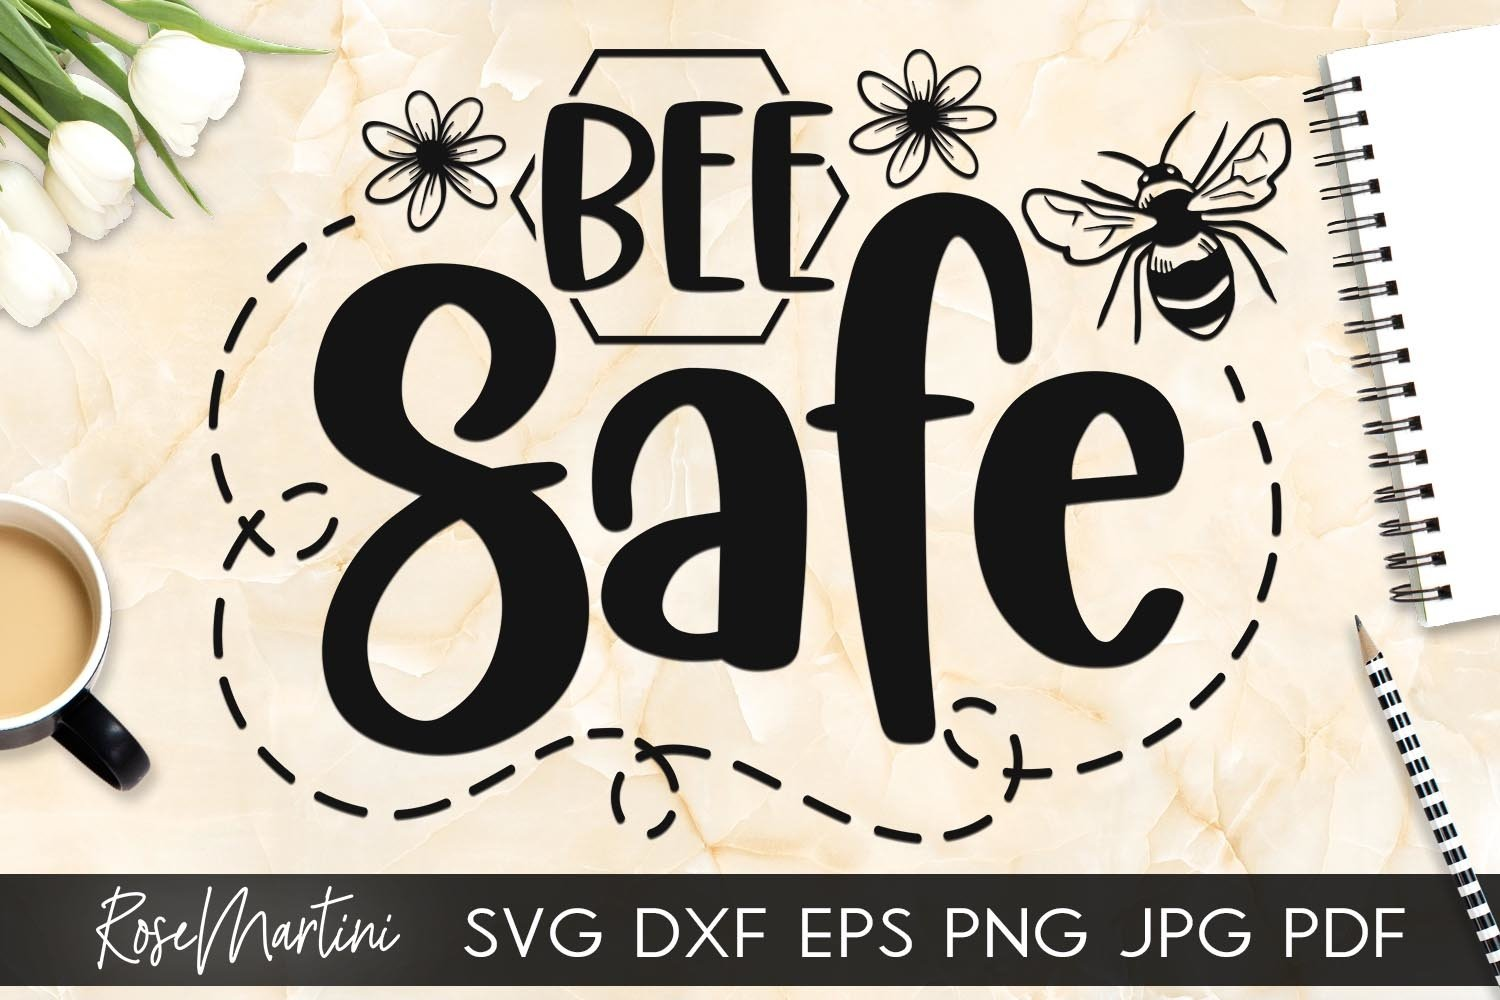 Bee Safe SVG Queen Bee SVG Bee Pun Bumble Bee SVG Quarantine example image 6